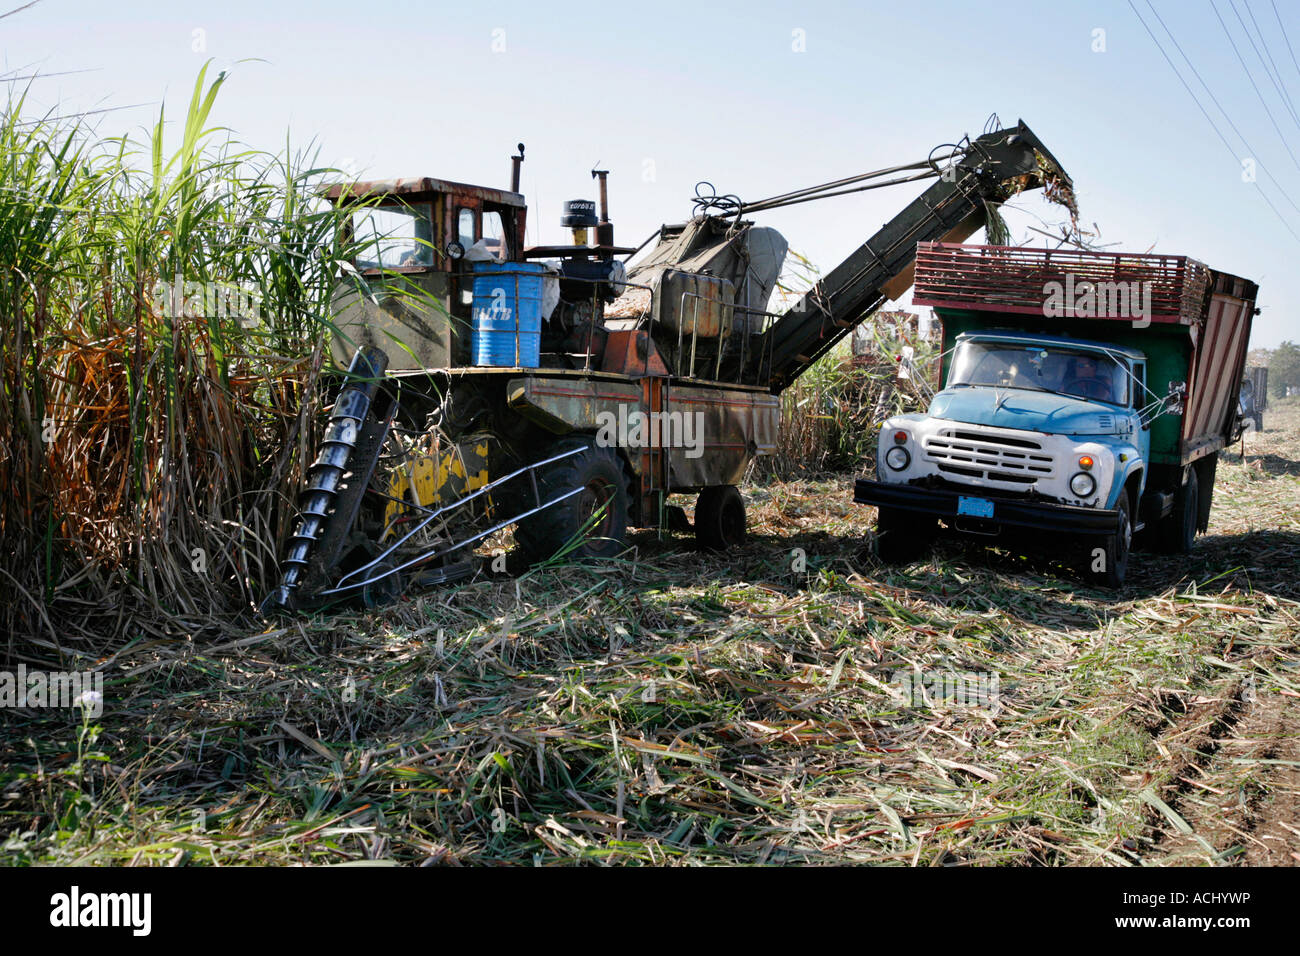 Sugarcane harvest in Cuba - Stock Image